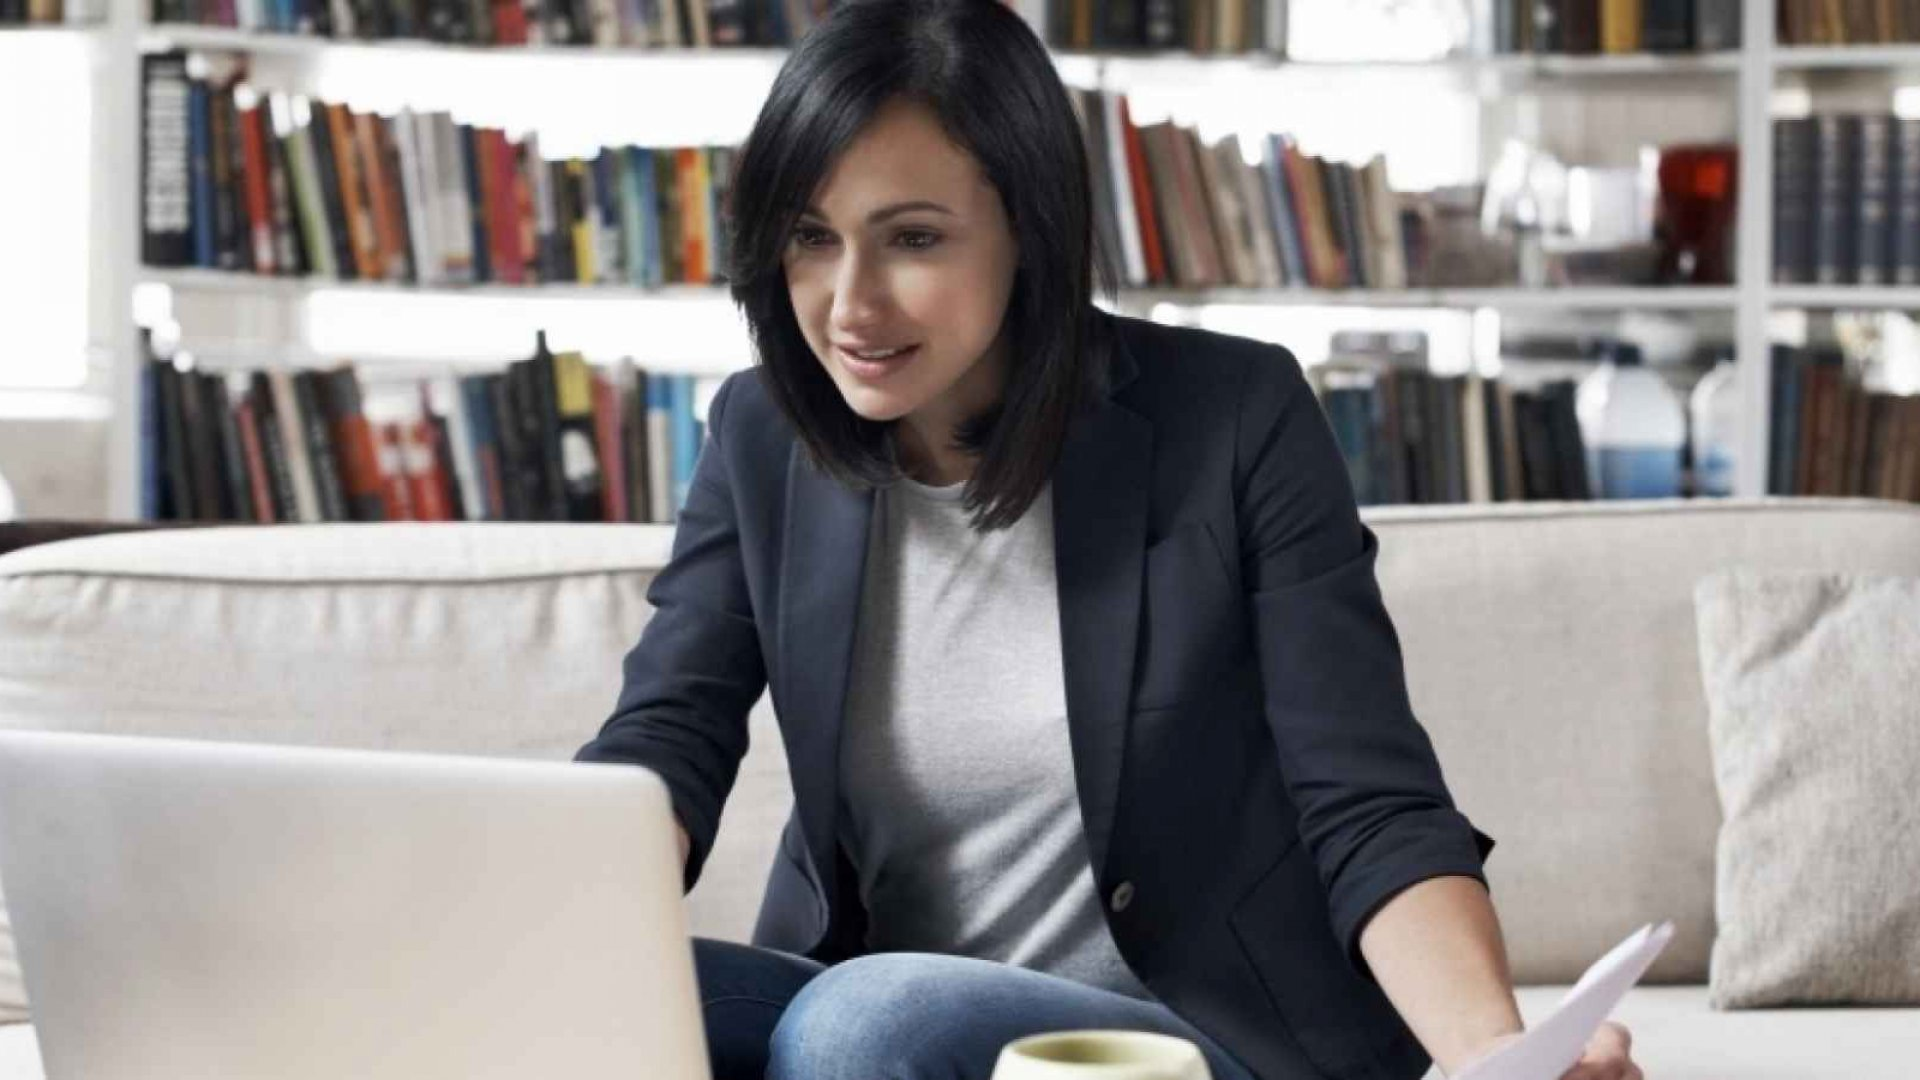 2 Traits To Master To Be More Productive Working From Home